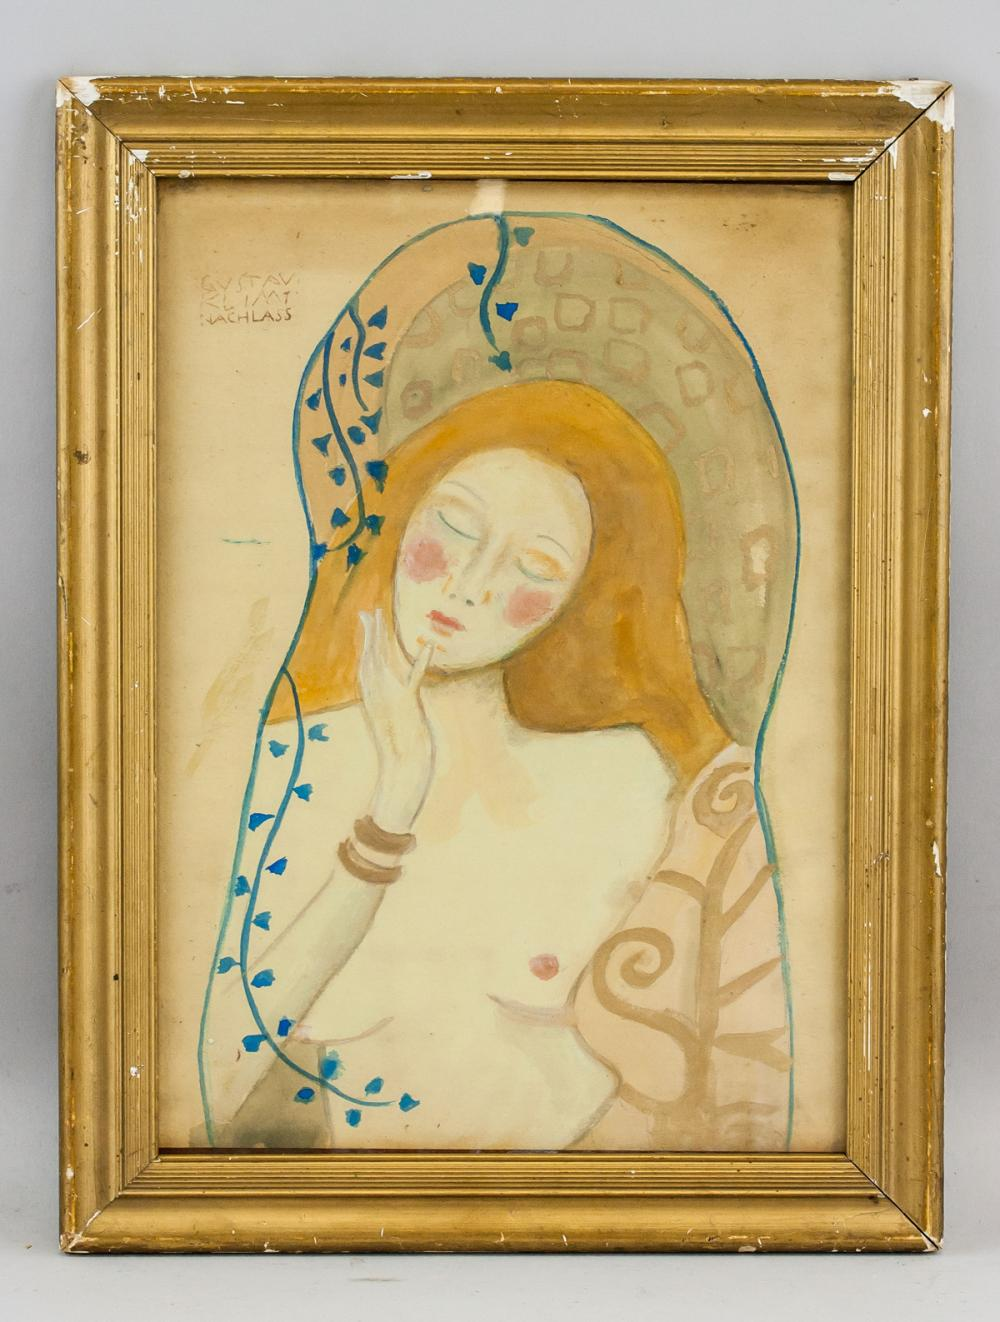 Lot 132: Gustav Klimt Austrian Art Nouveau Mixed Media